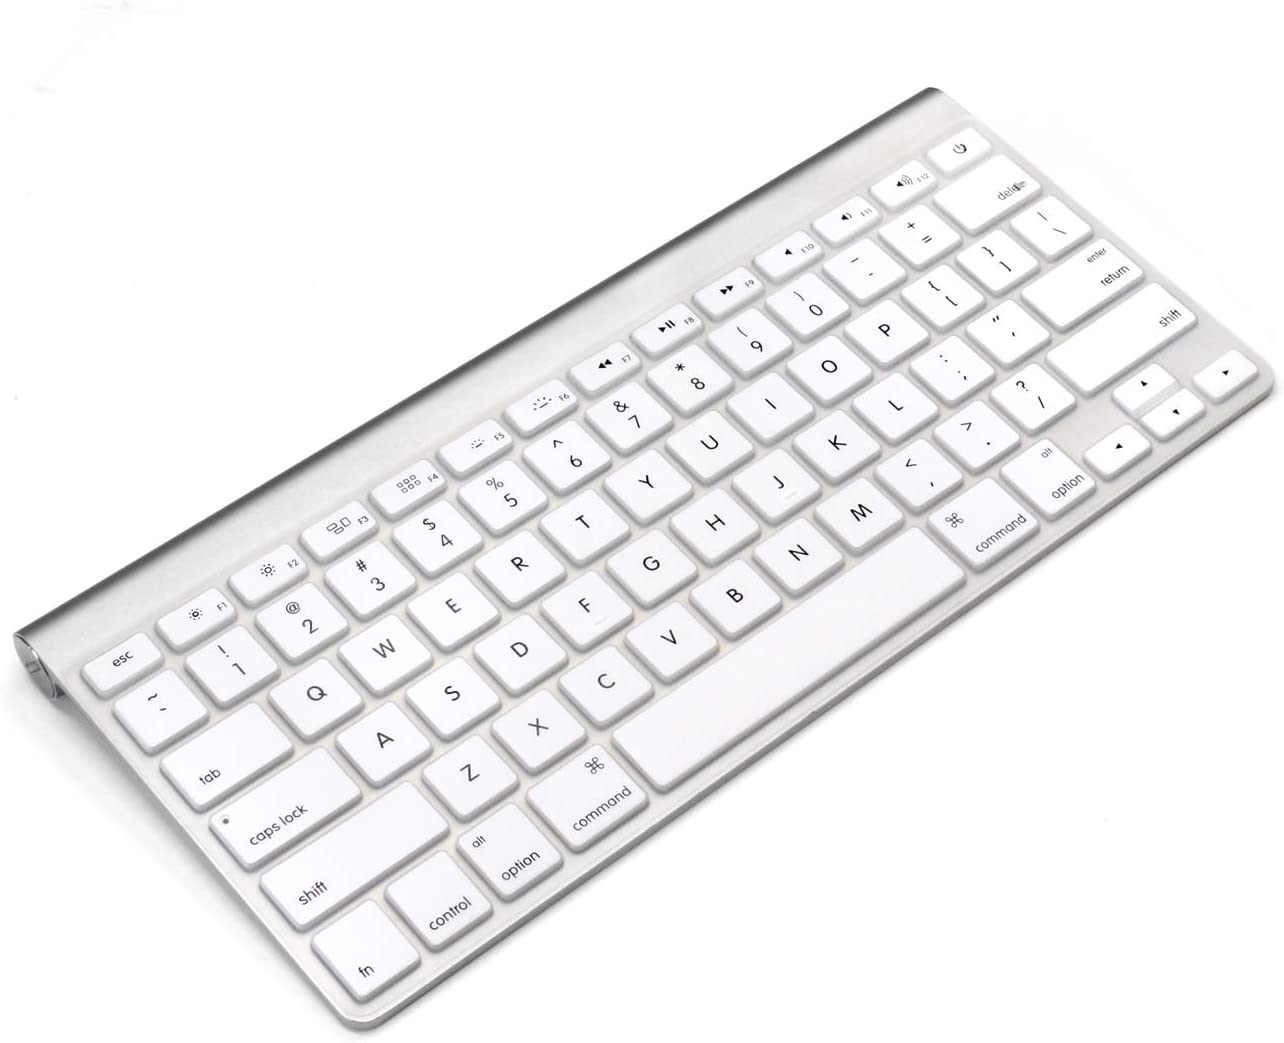 ProElife Ultra Thin Silicone Keyboard Protector Cover Skin for Apple Wireless Keyboard with Bluetooth MC184LL/B (Model: A1314, U.S Layout) (Not Fit iMac Magic Keyboard), White